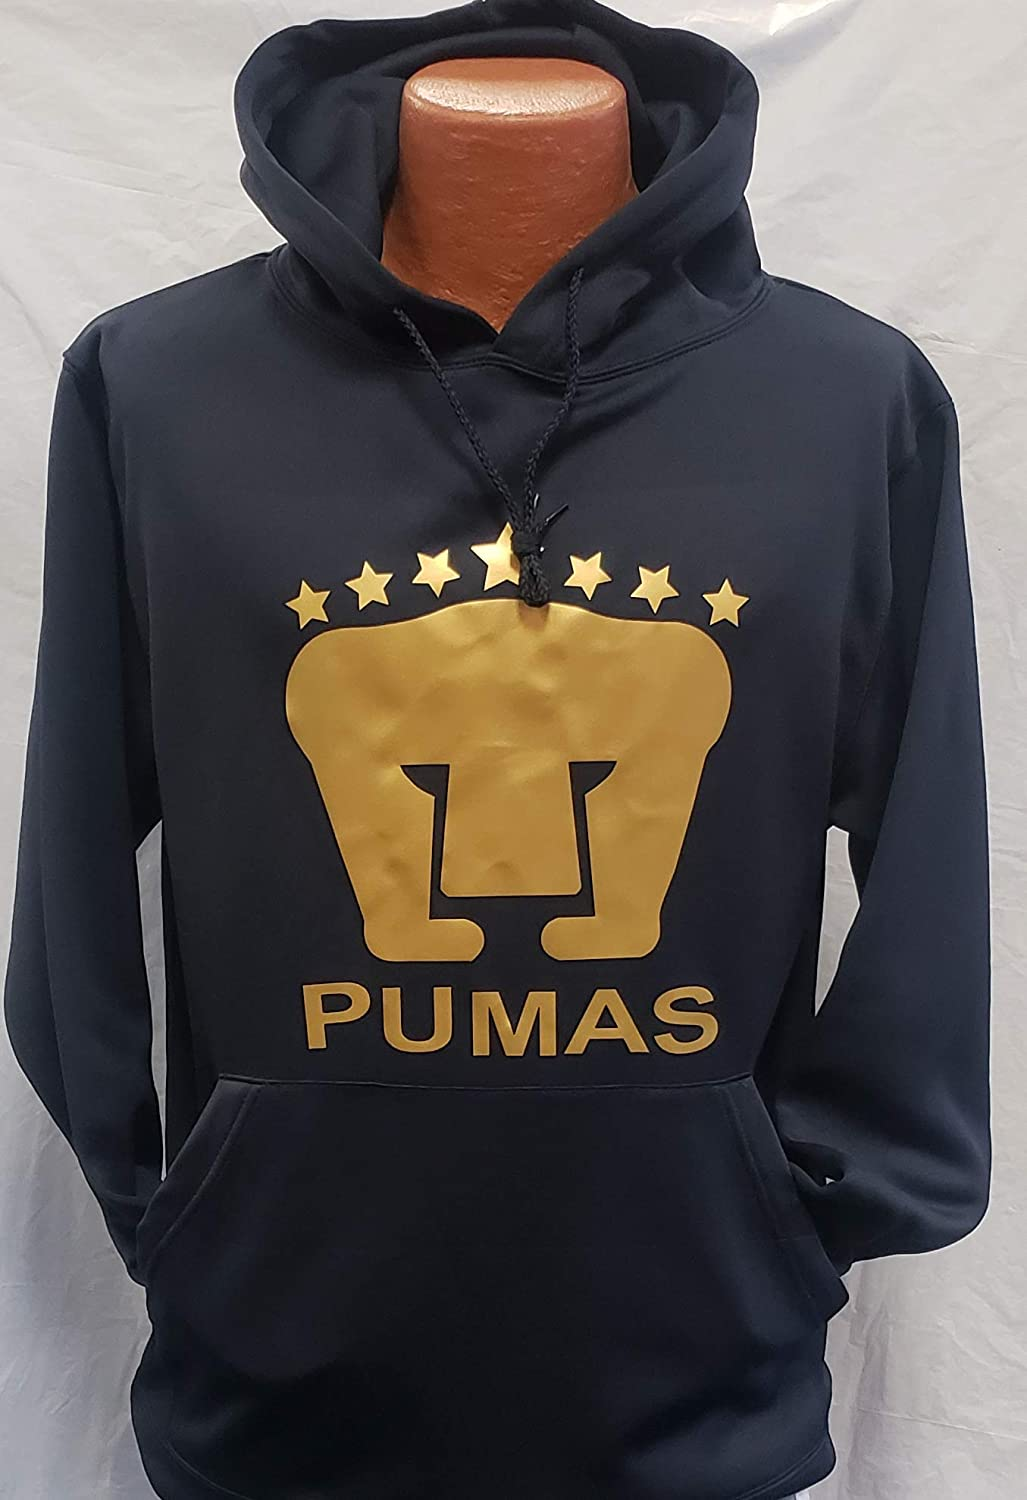 Amazon.com : New! Club Deportivo Pumas De La UNAM Hoodie Size Small : Sports & Outdoors